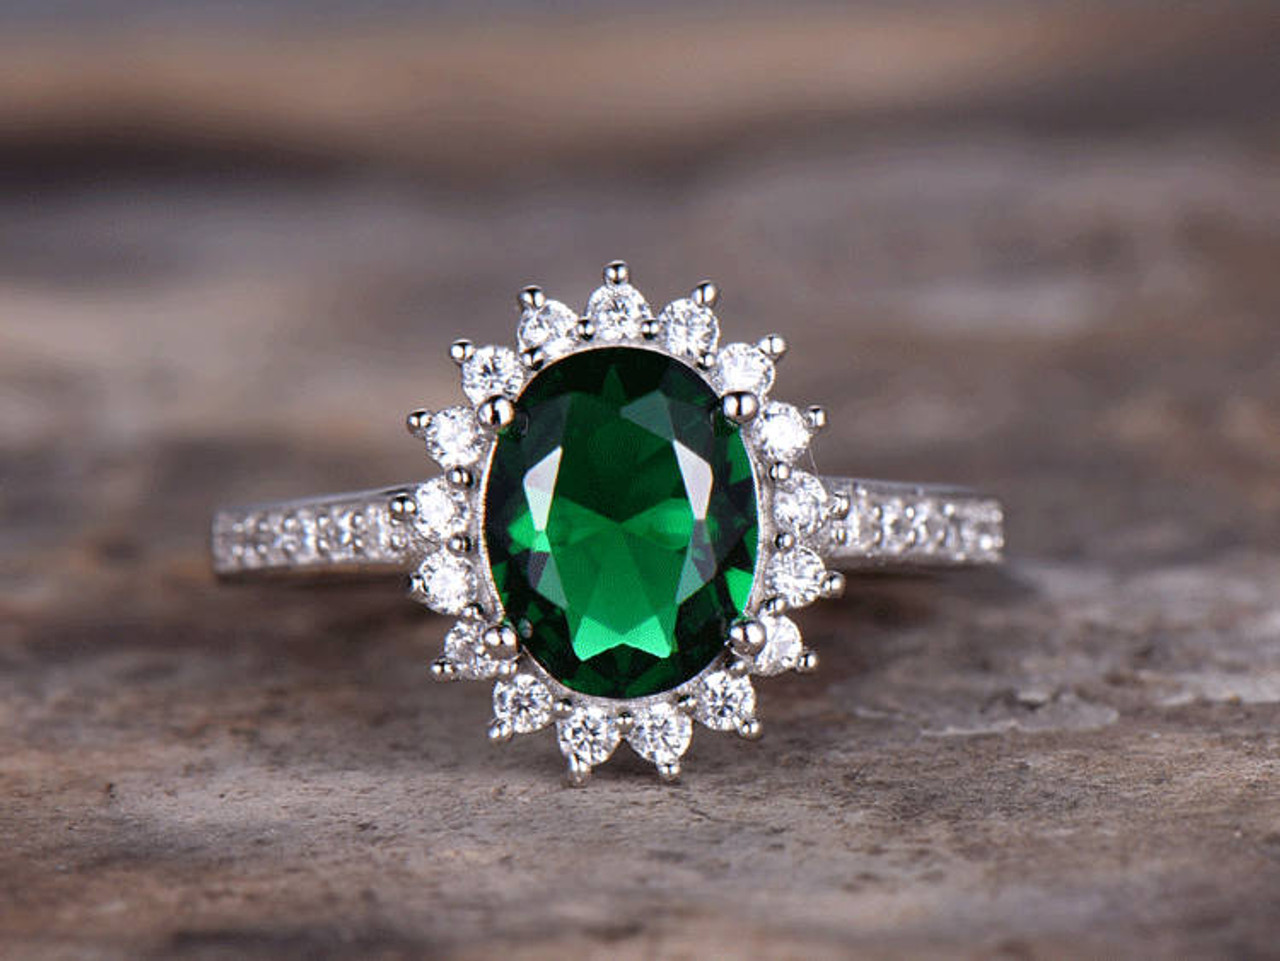 Emerald Engagement Ring 6x8mm Oval Cut Vintage Emerald